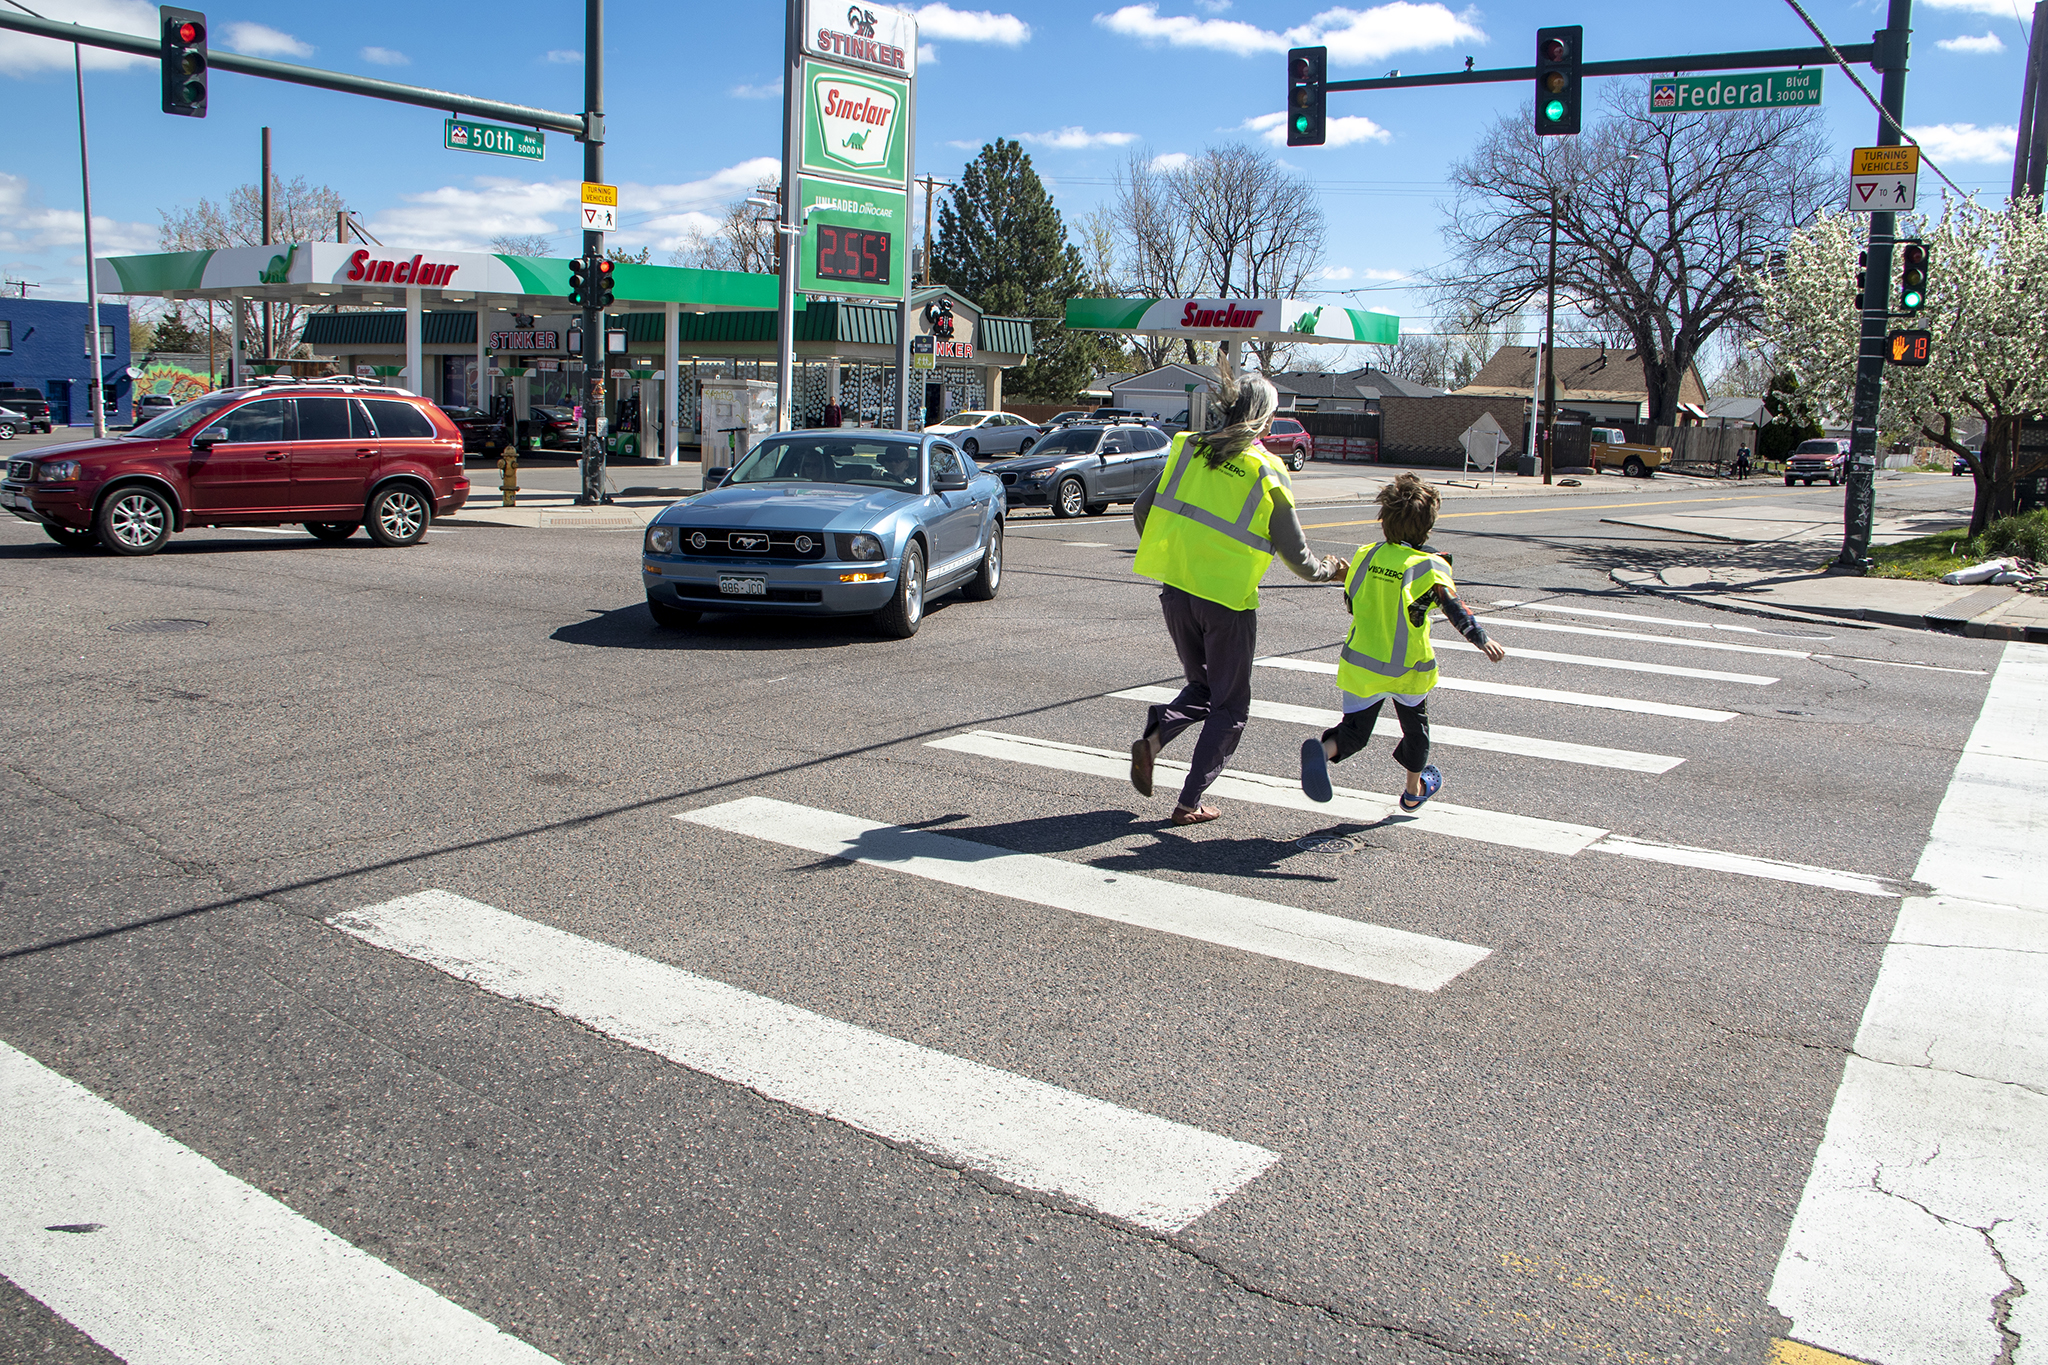 Lindsey Rosendahal and her son, Anders, runs across Federal Boulevard during a traffic slowing demo put on by Vision Zero and WalkDenver in Denver's Regis neighborhood, April 27, 2019.